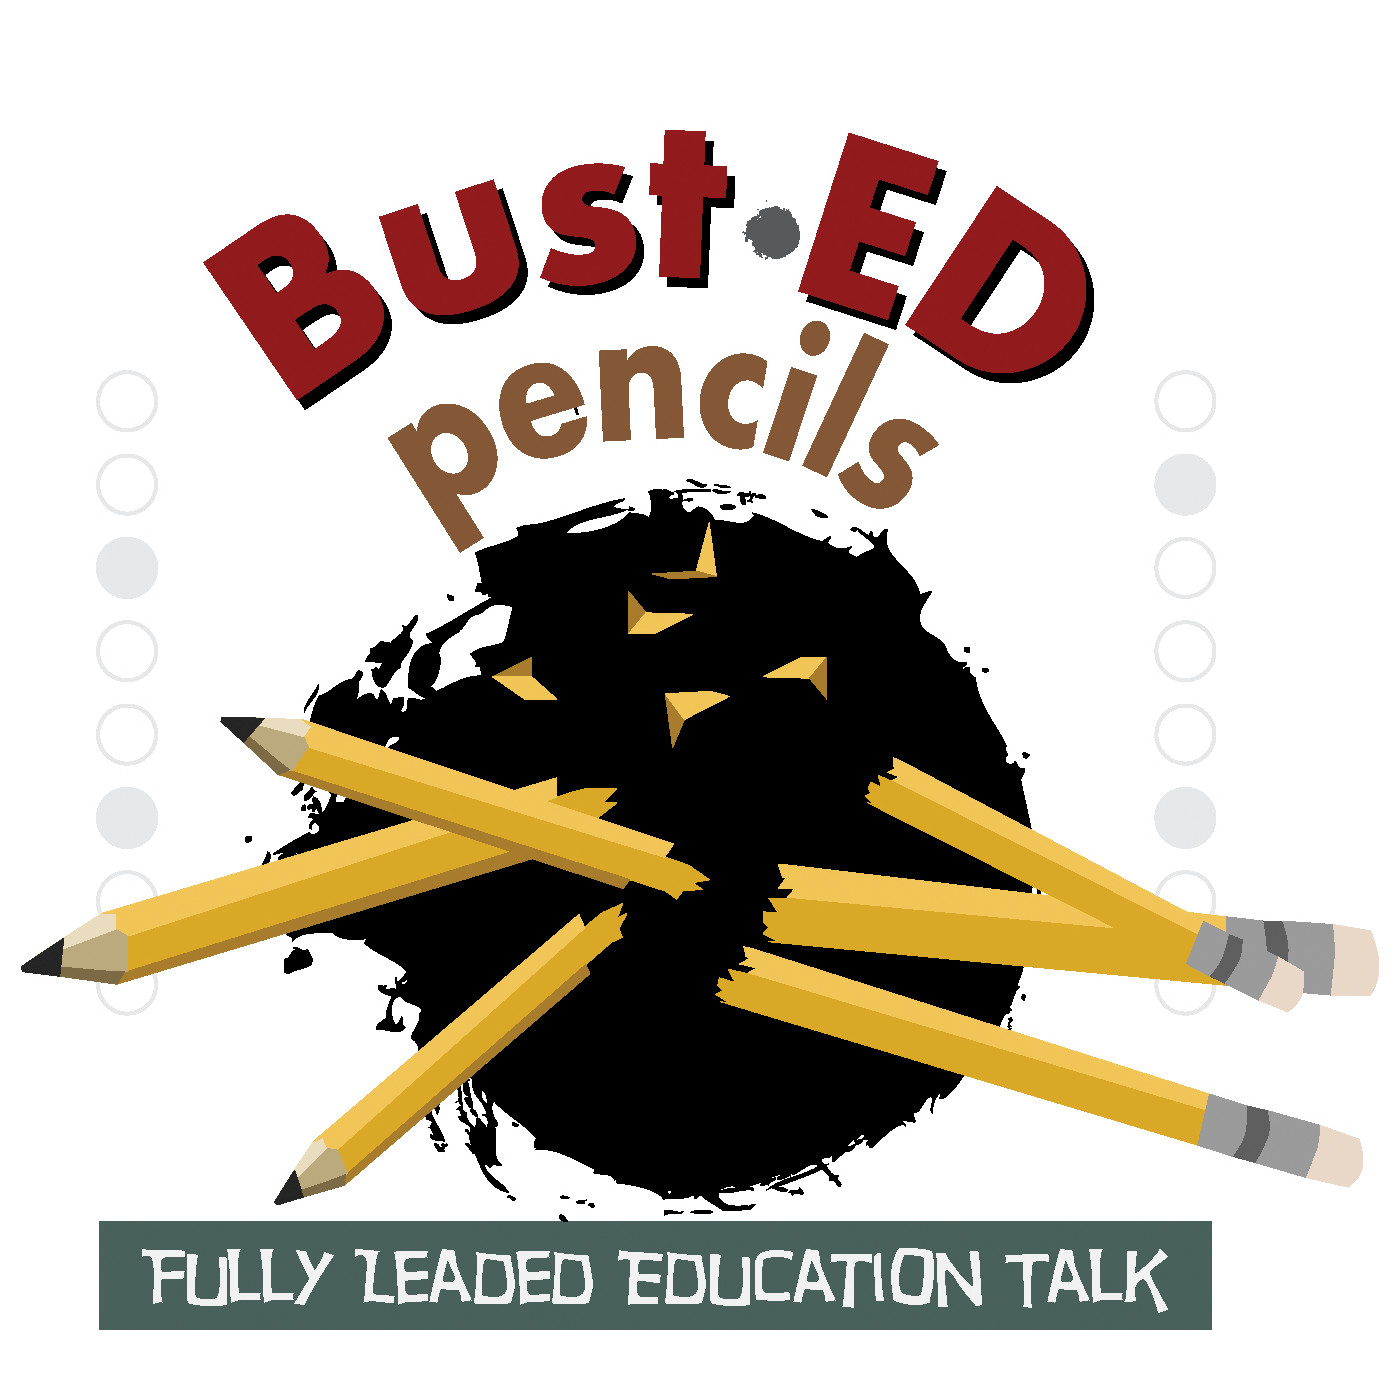 BustED Pencils